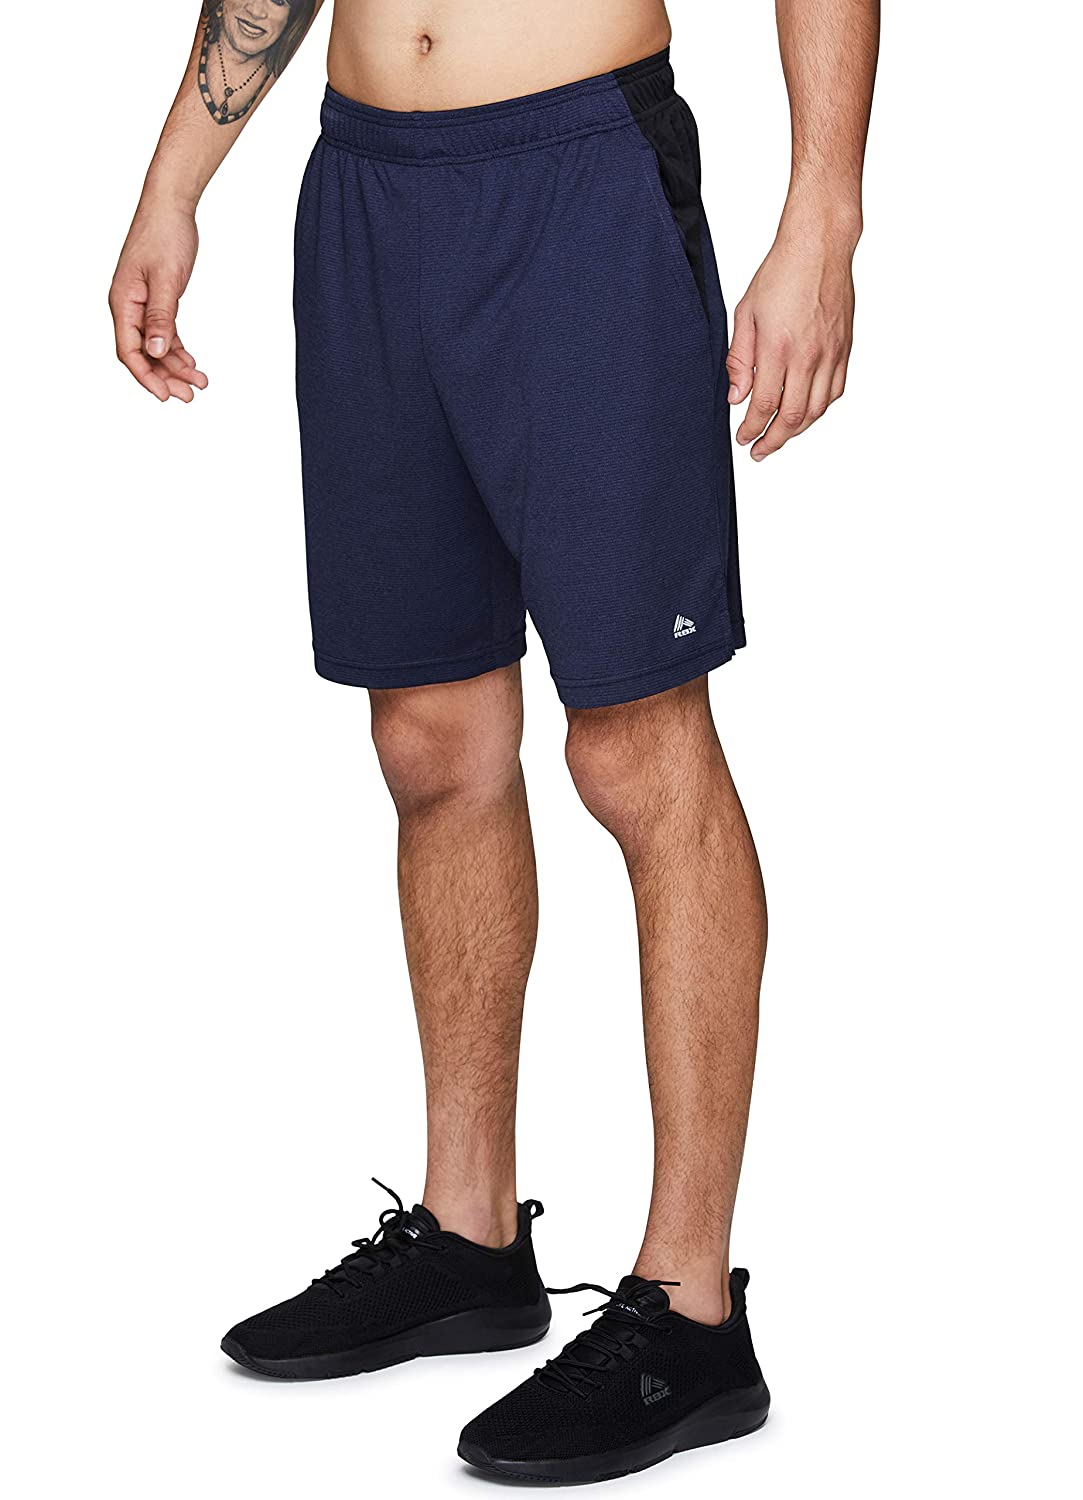 RBX Active Mens 9-Inch Inseam Workout Running Gym Athletic Basketball Shorts with Pockets